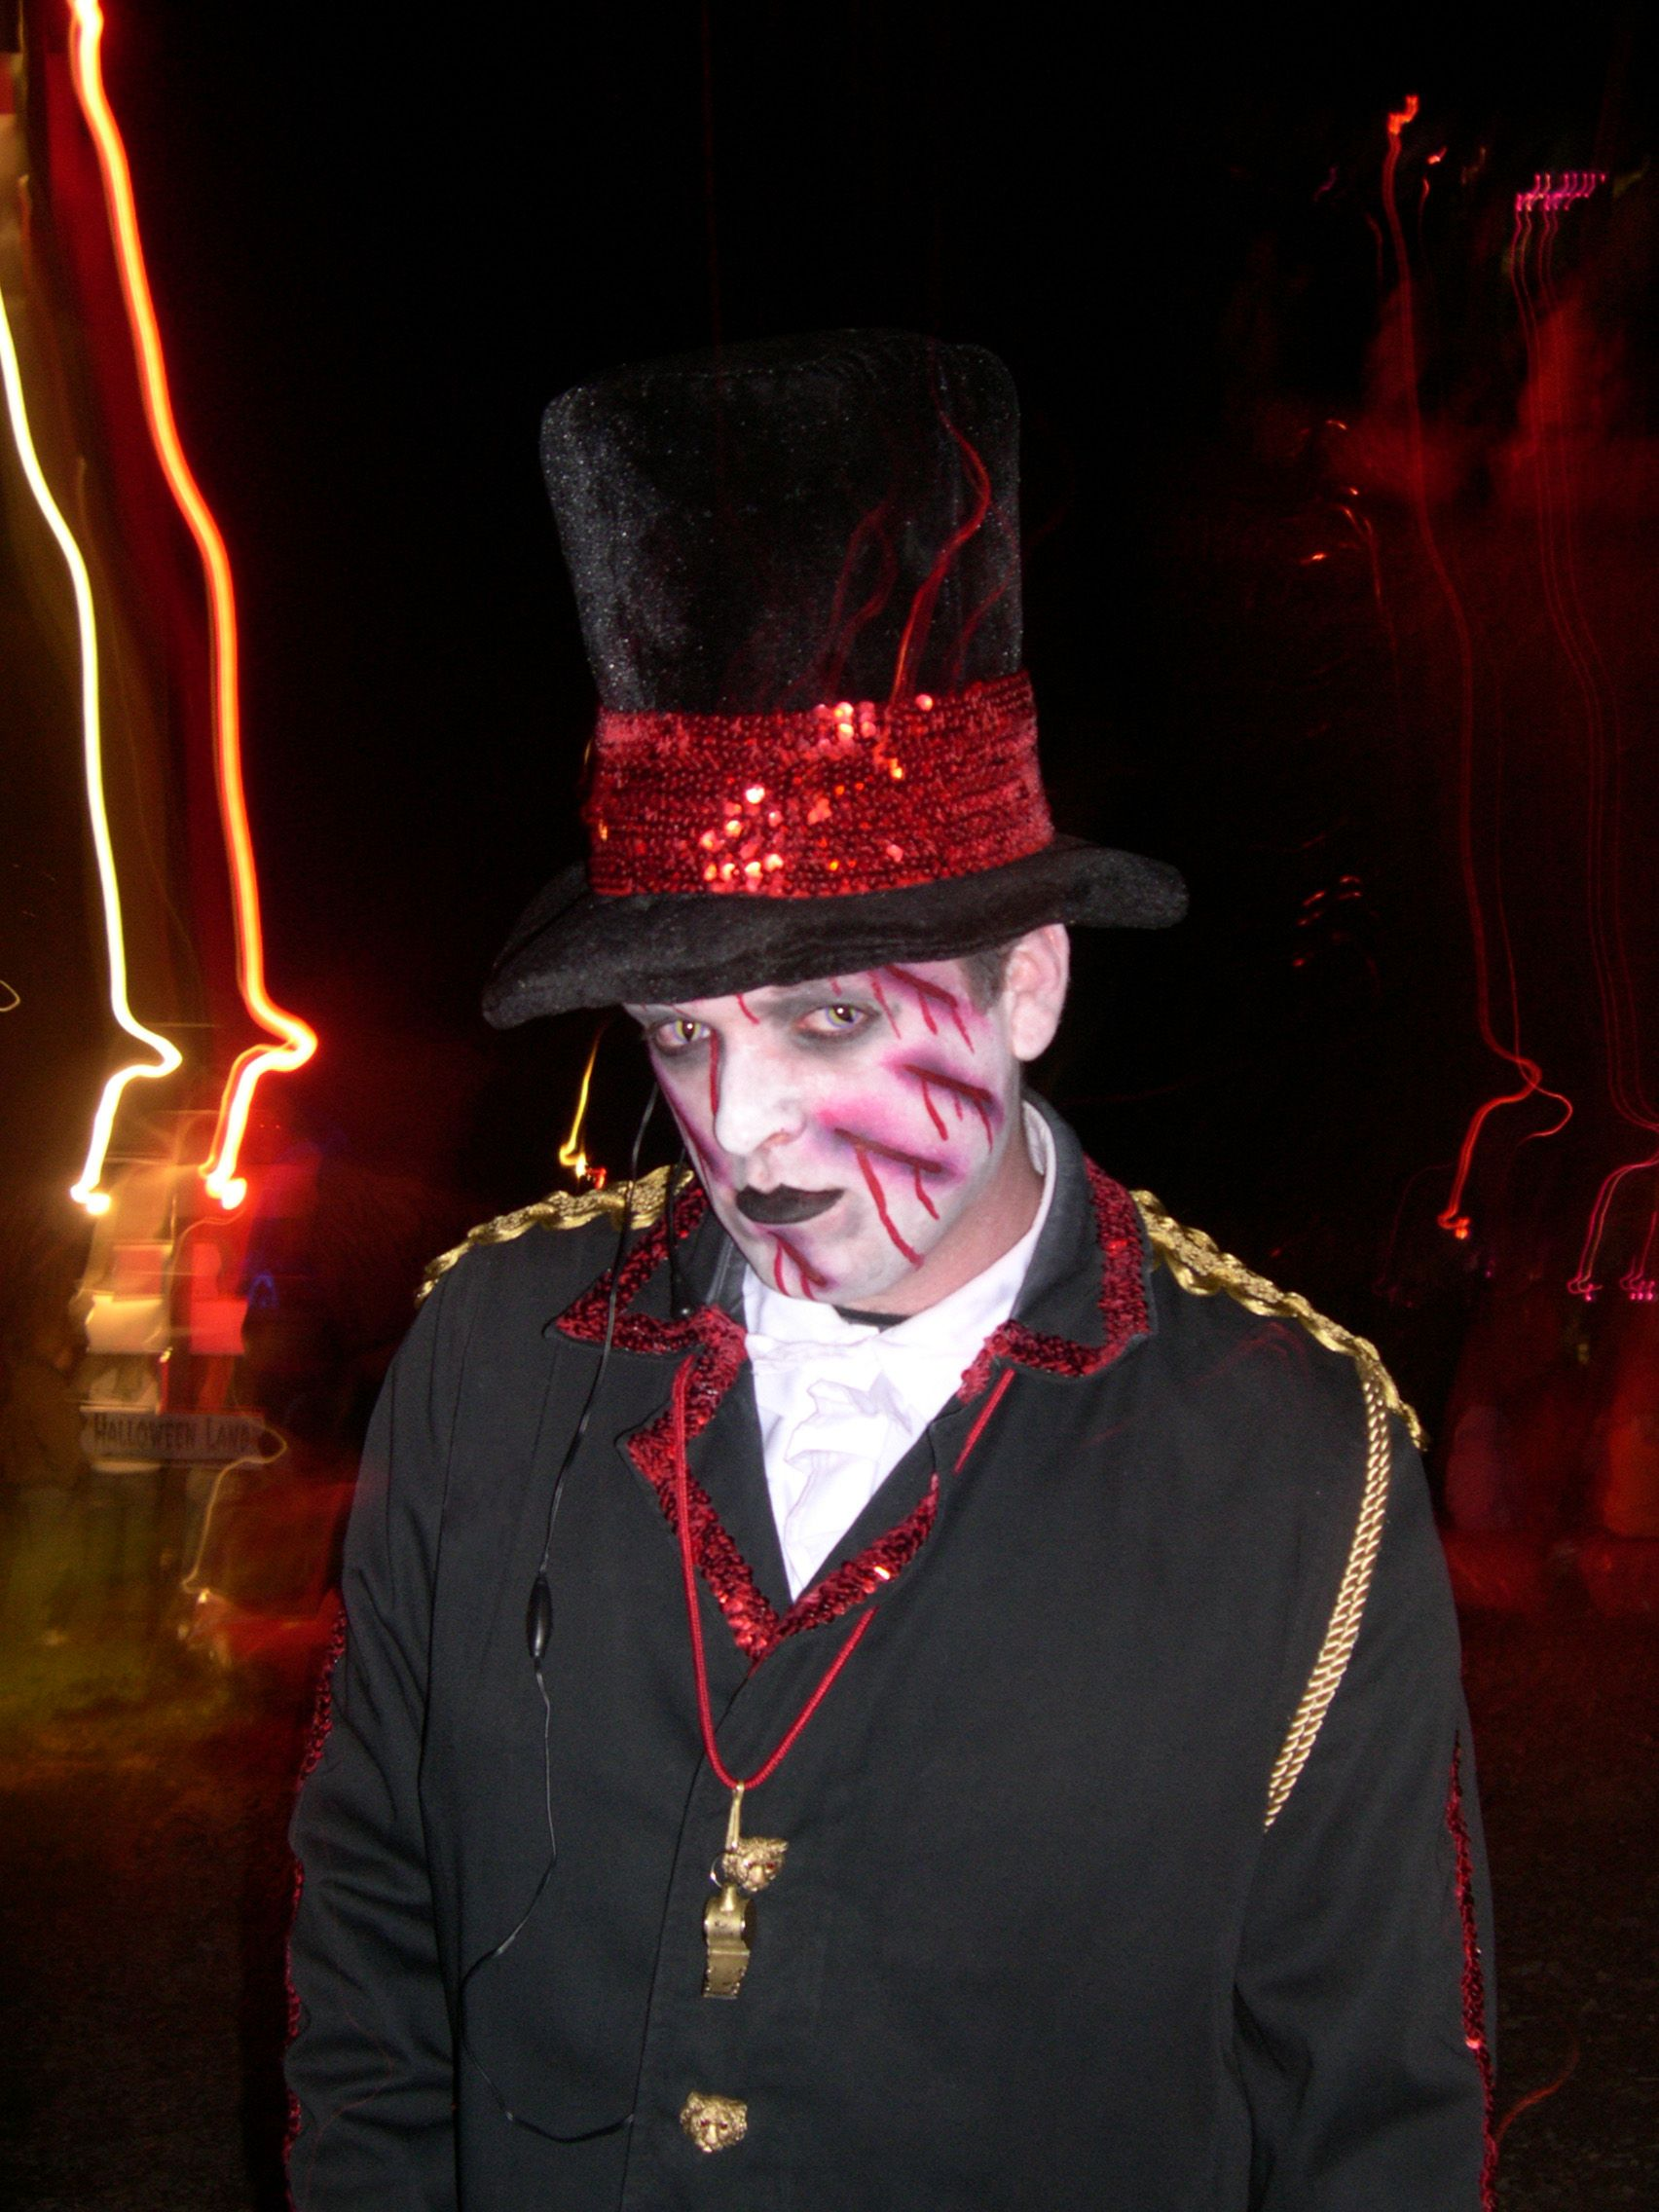 DJ Cir Chris at the Wicked Forest Haunted Attraction in Logan, Ohio